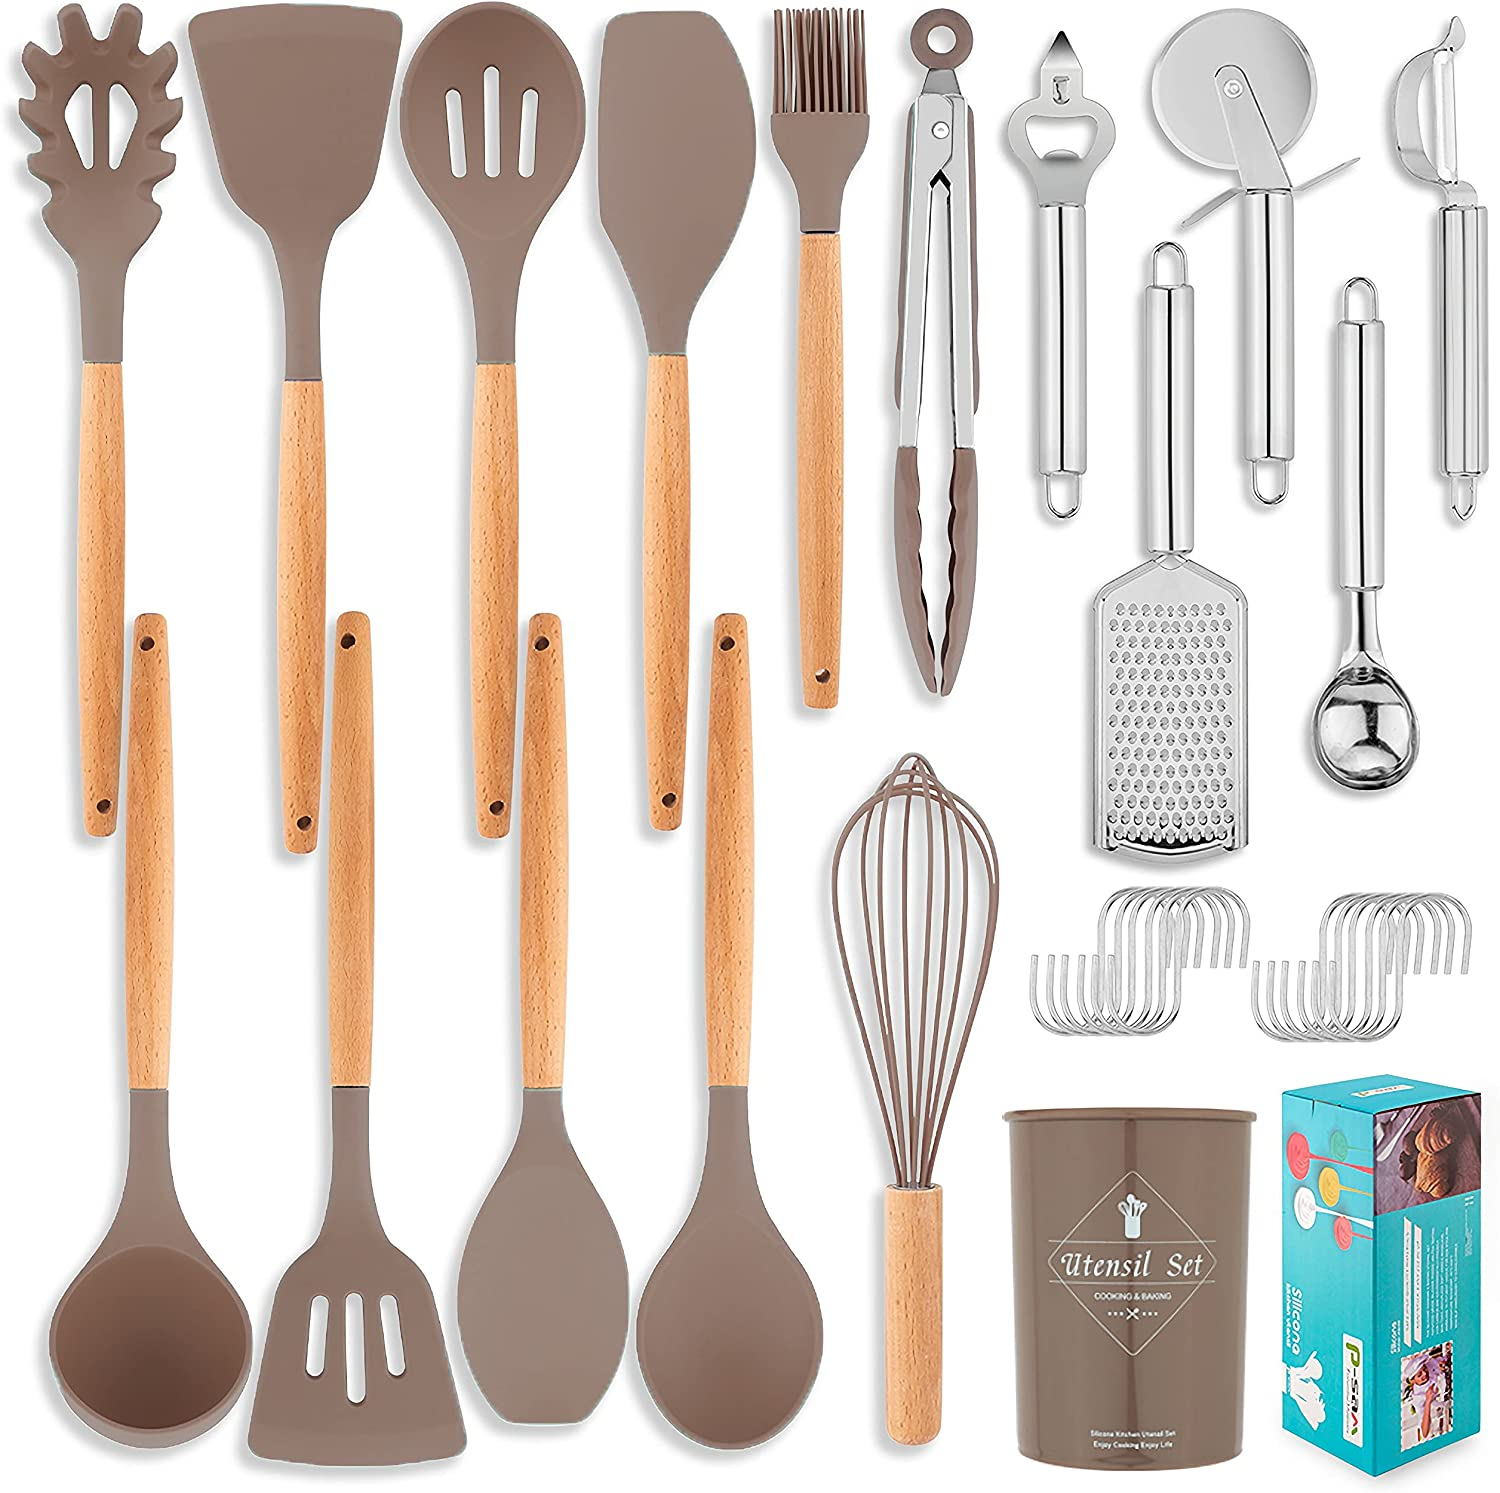 29Pcs Silicone trust Cooking Kitchen Max 71% OFF Sets Utensils Set Utensil